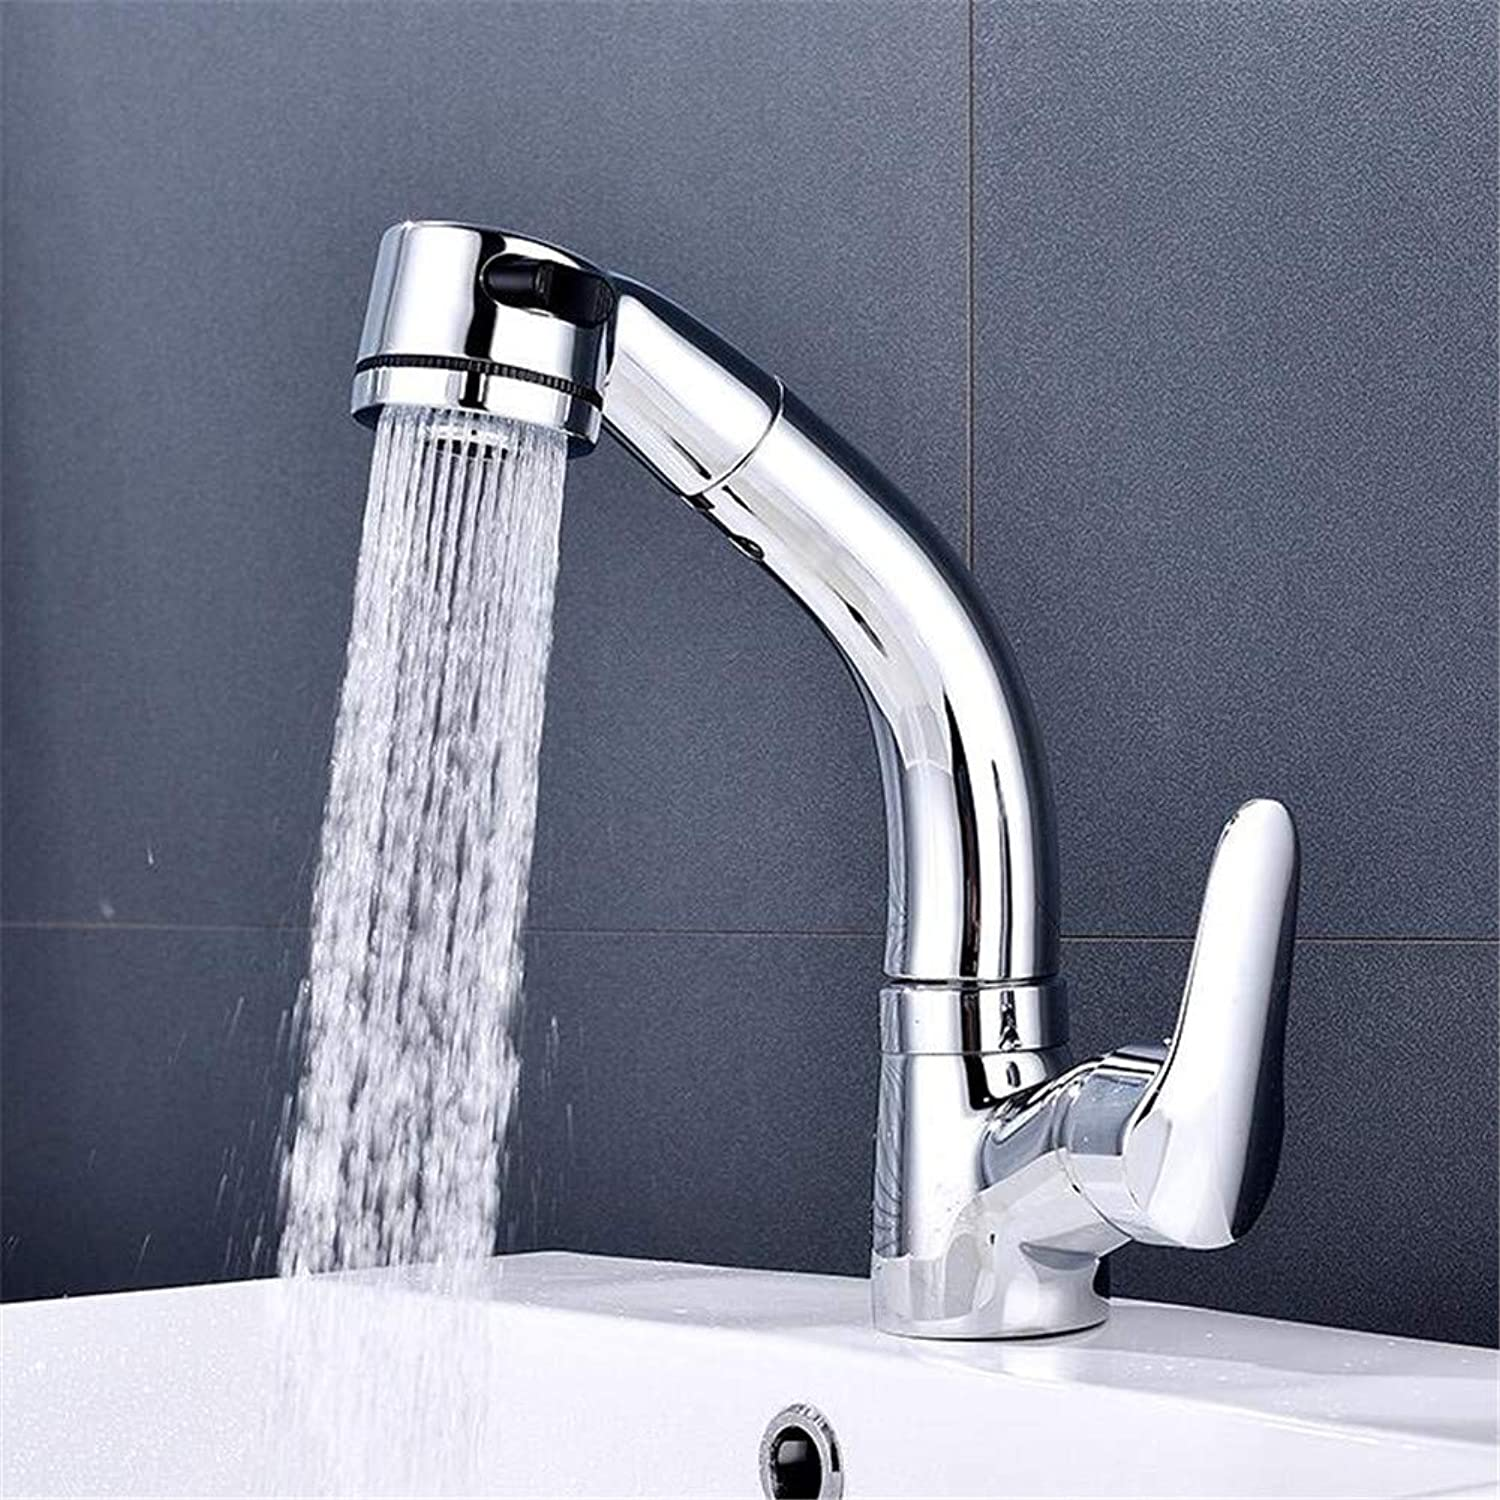 Modern Home Kitchen and Bathroom Sink Taps Copper Lifting and Pulling Basin Faucet Hot and Cold redatable Basin Faucet